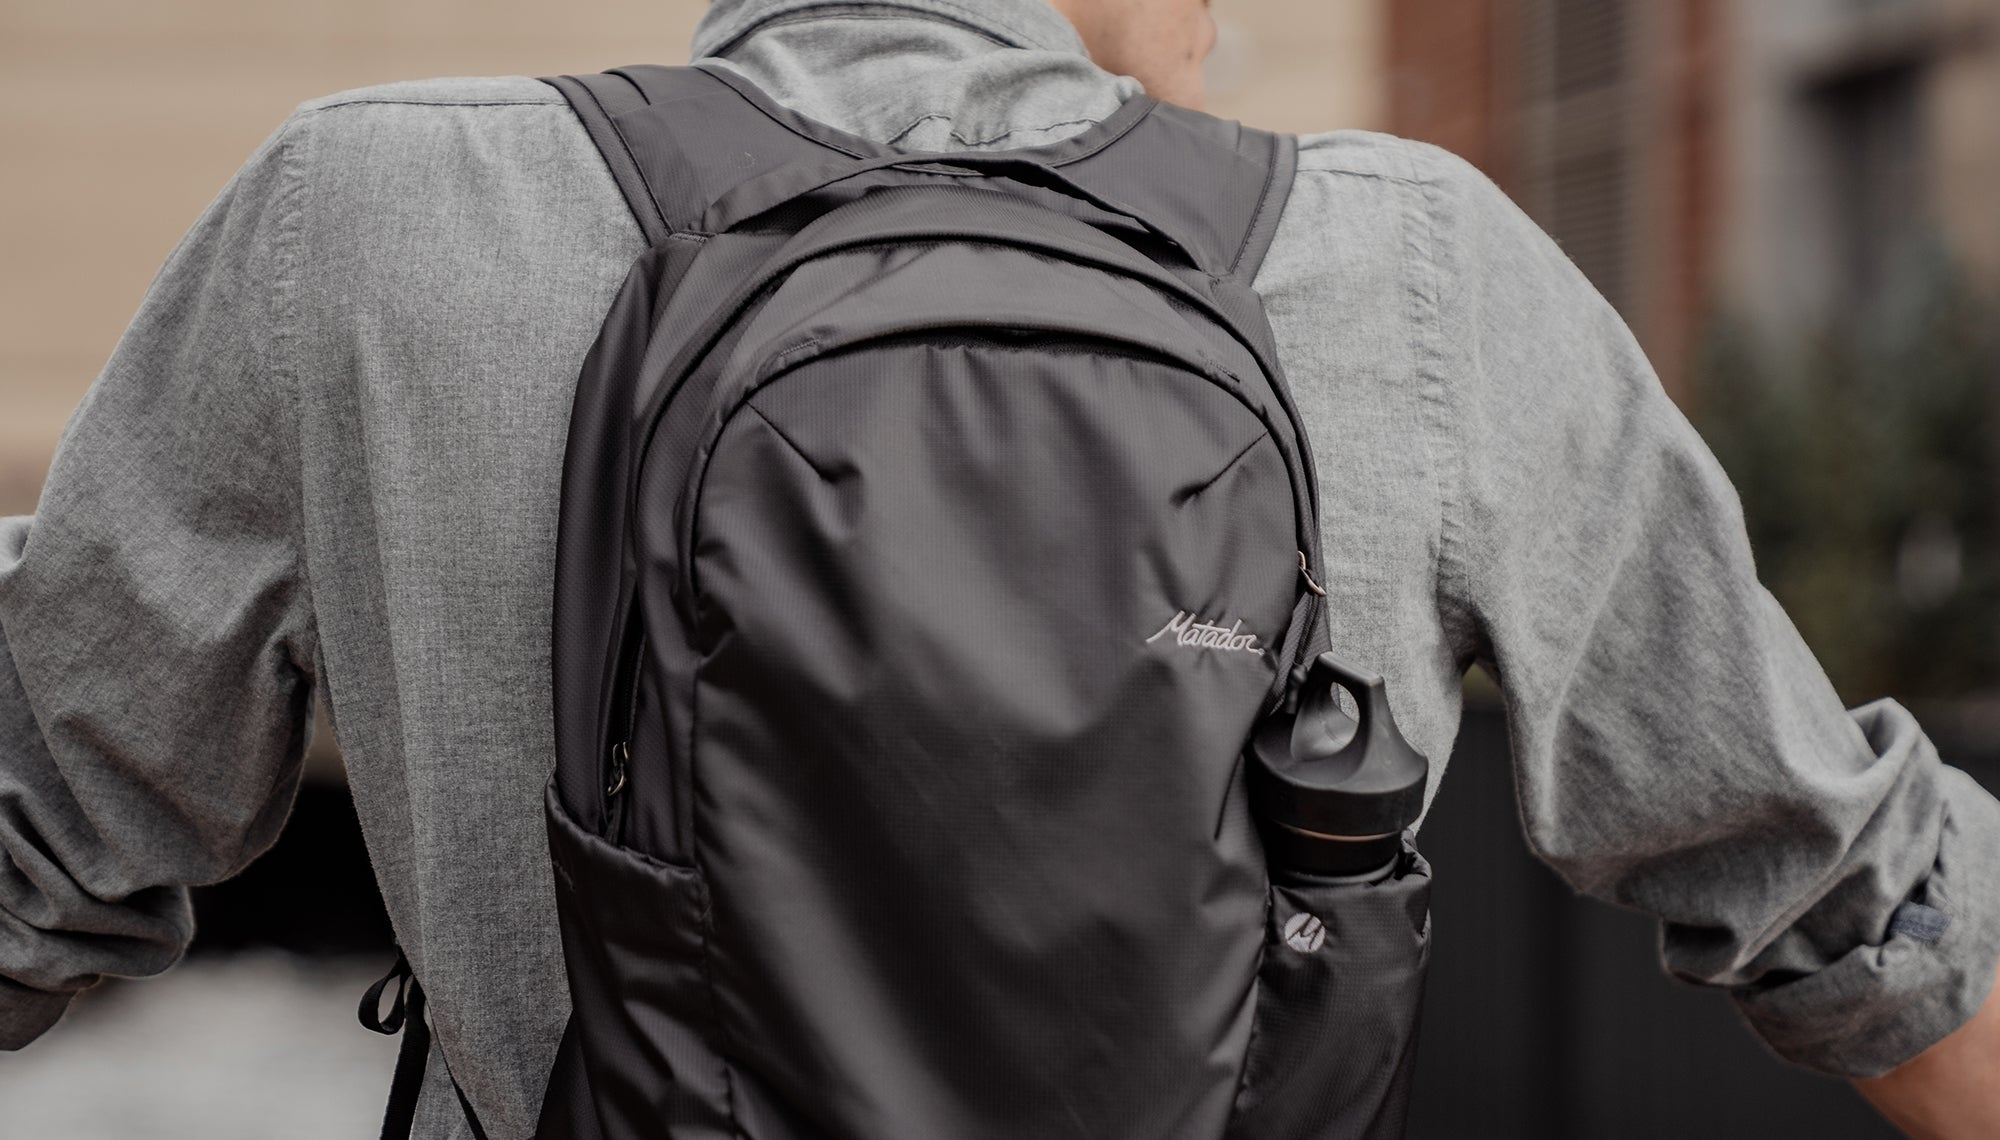 Close up view of backpack on man's back